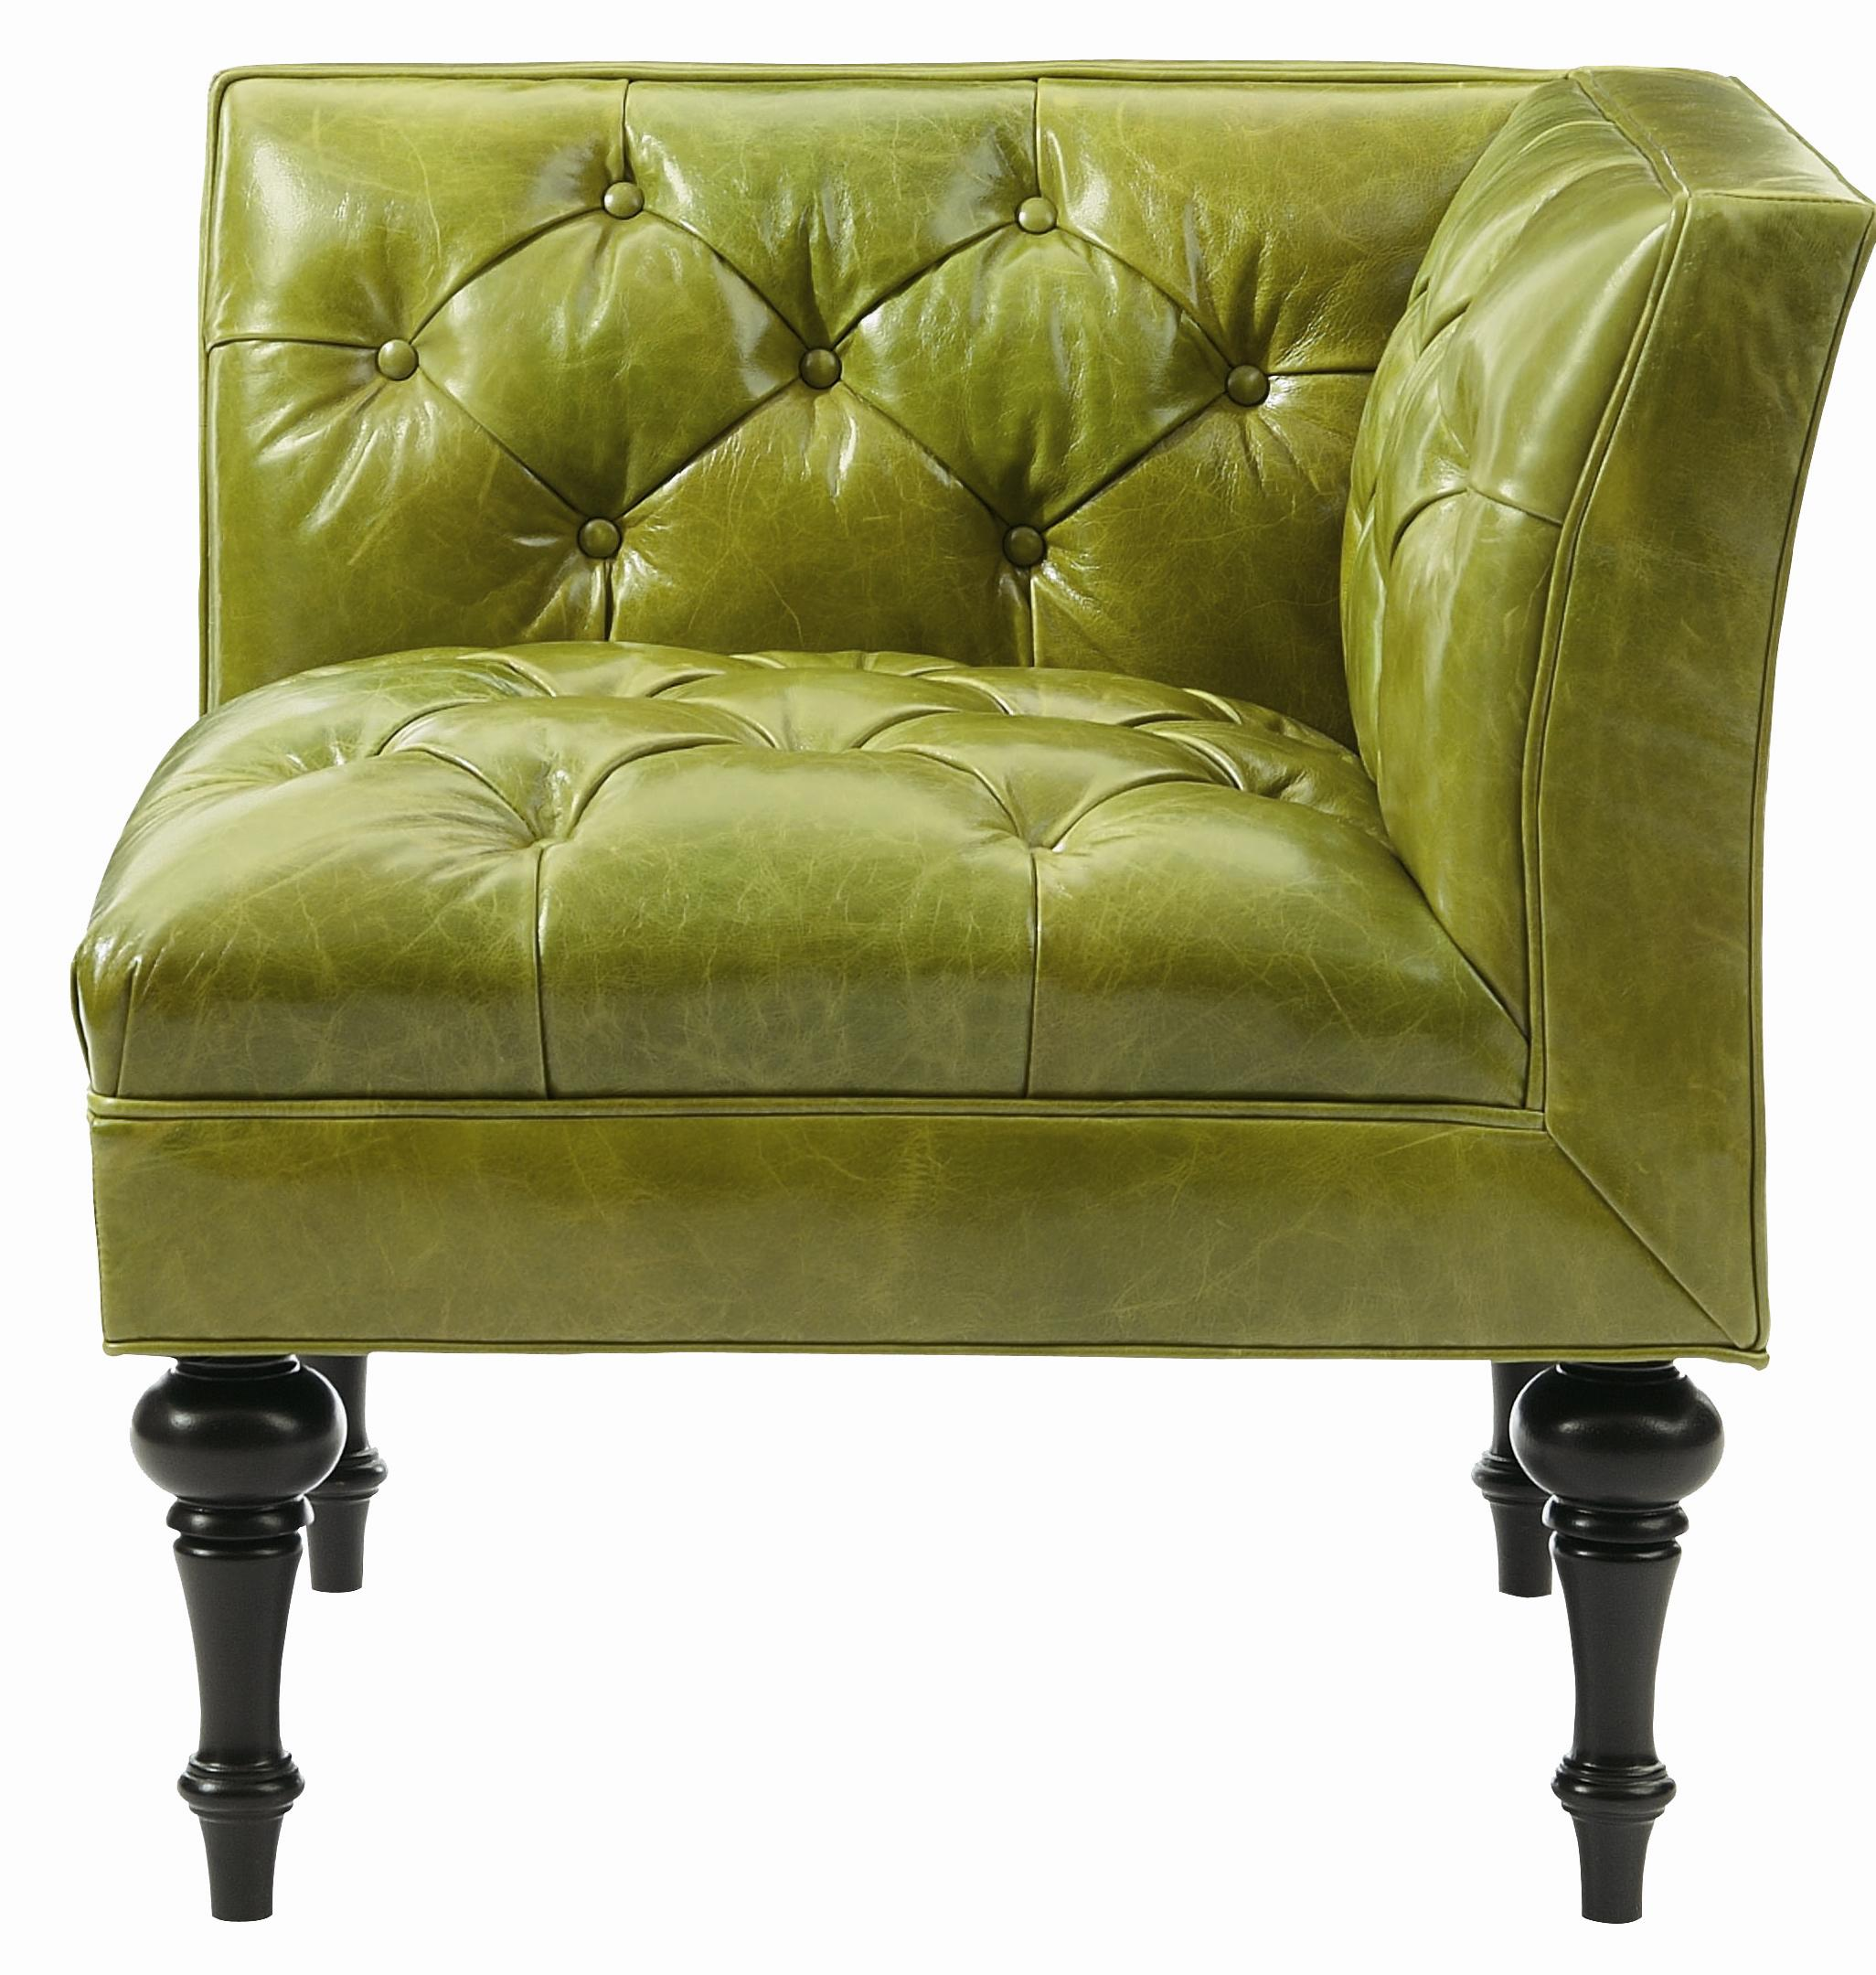 Bernhardt interiors chairs n1832l salon corner chair with for Colored salon chairs